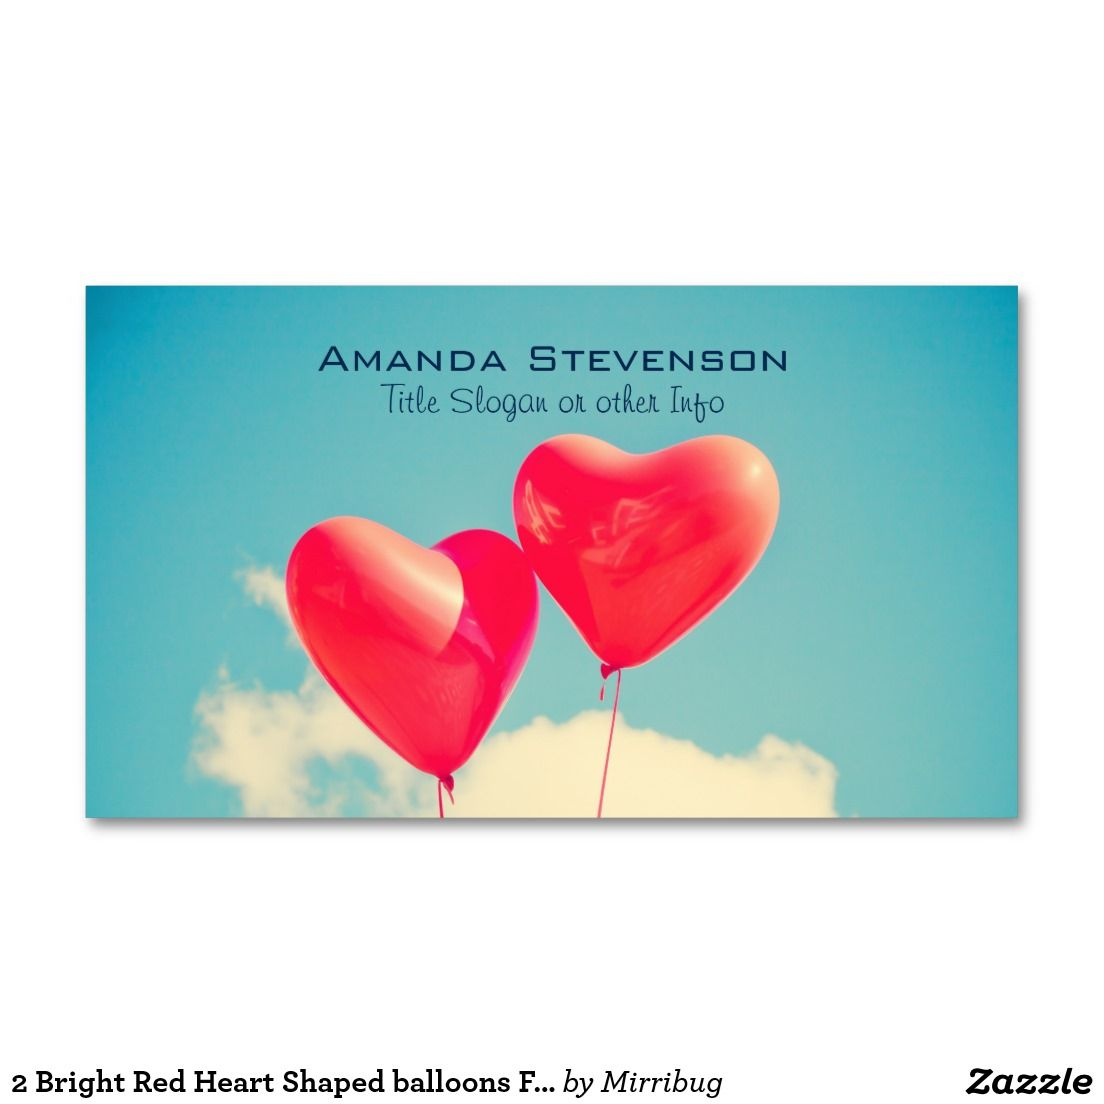 2 Bright Red Heart Shaped balloons Floating Upward Business Card ...